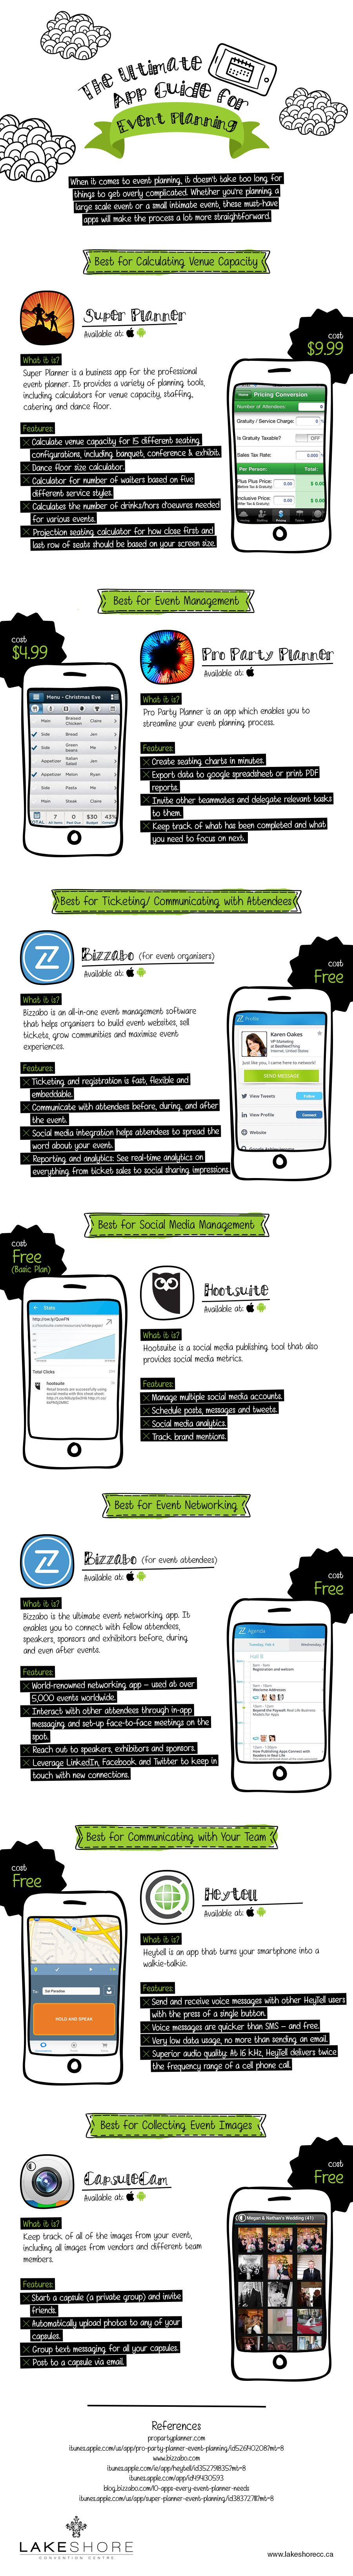 The Ultimate App Guide for Event Planning #infographic